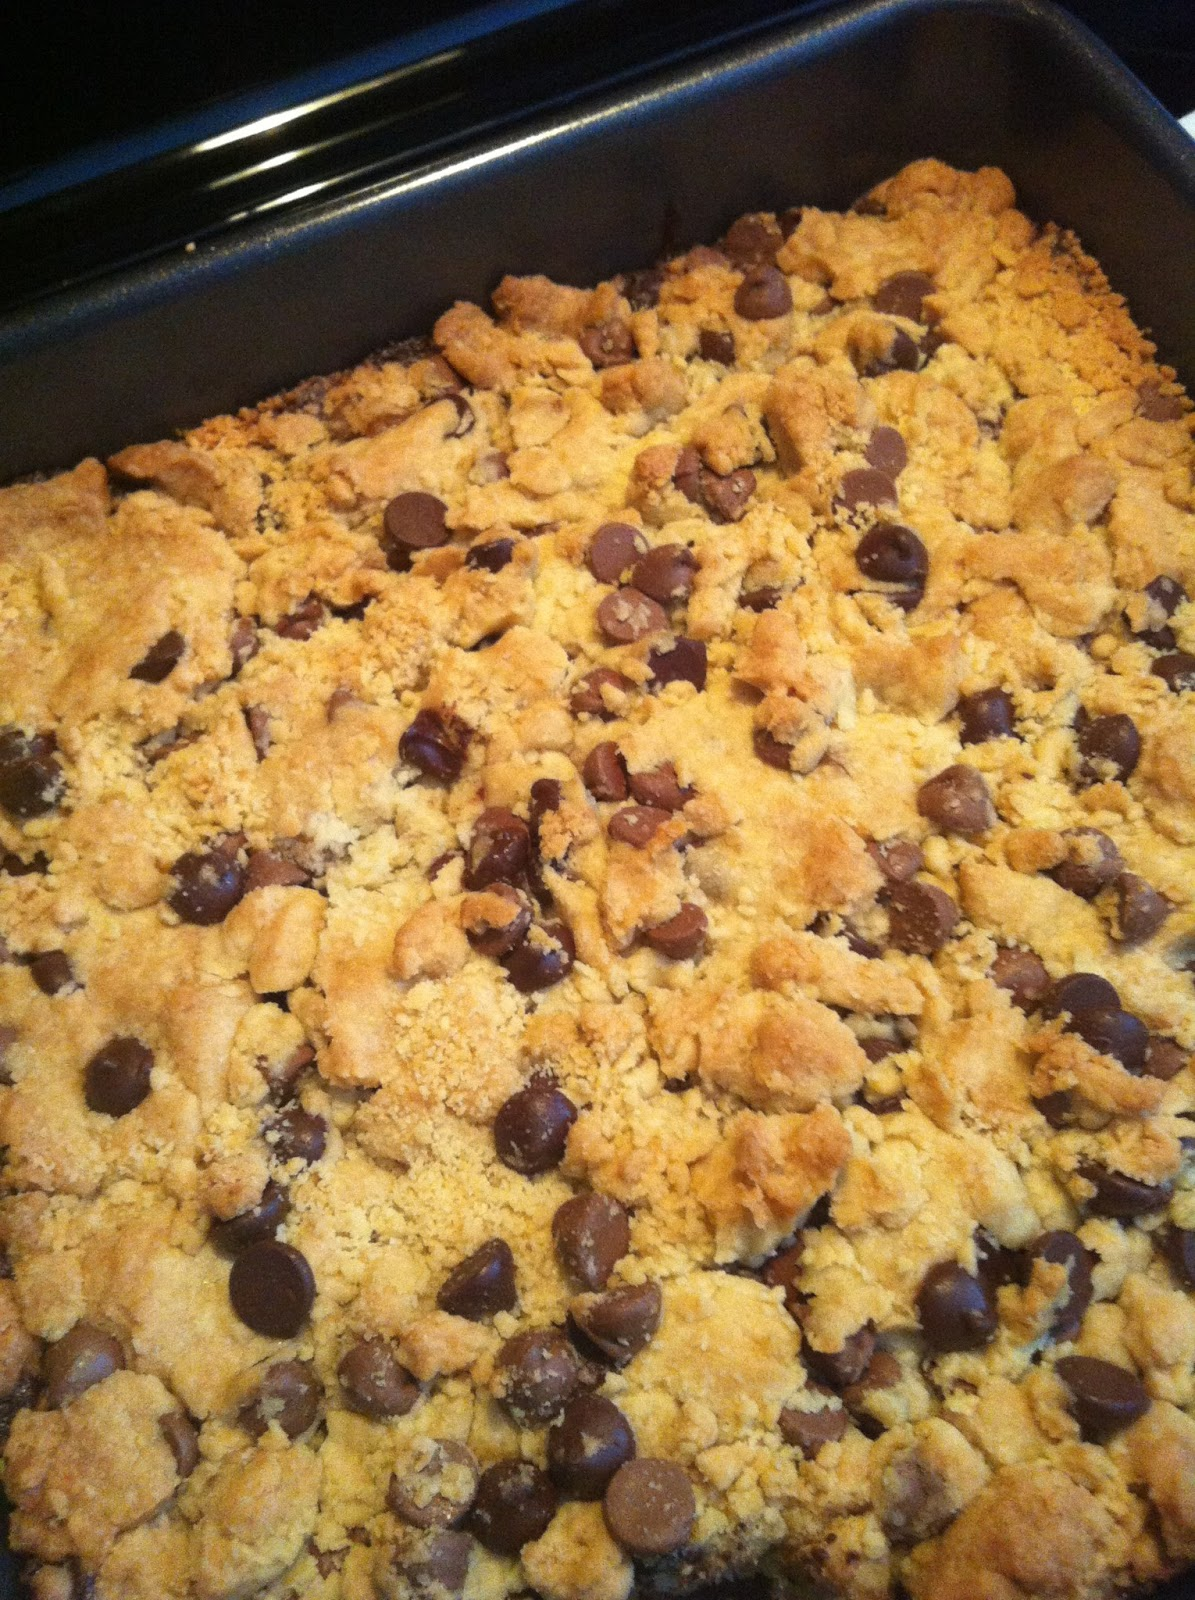 ... Cause I Want To: Chocolate Chip Cookie Topped Brownies - My First Post